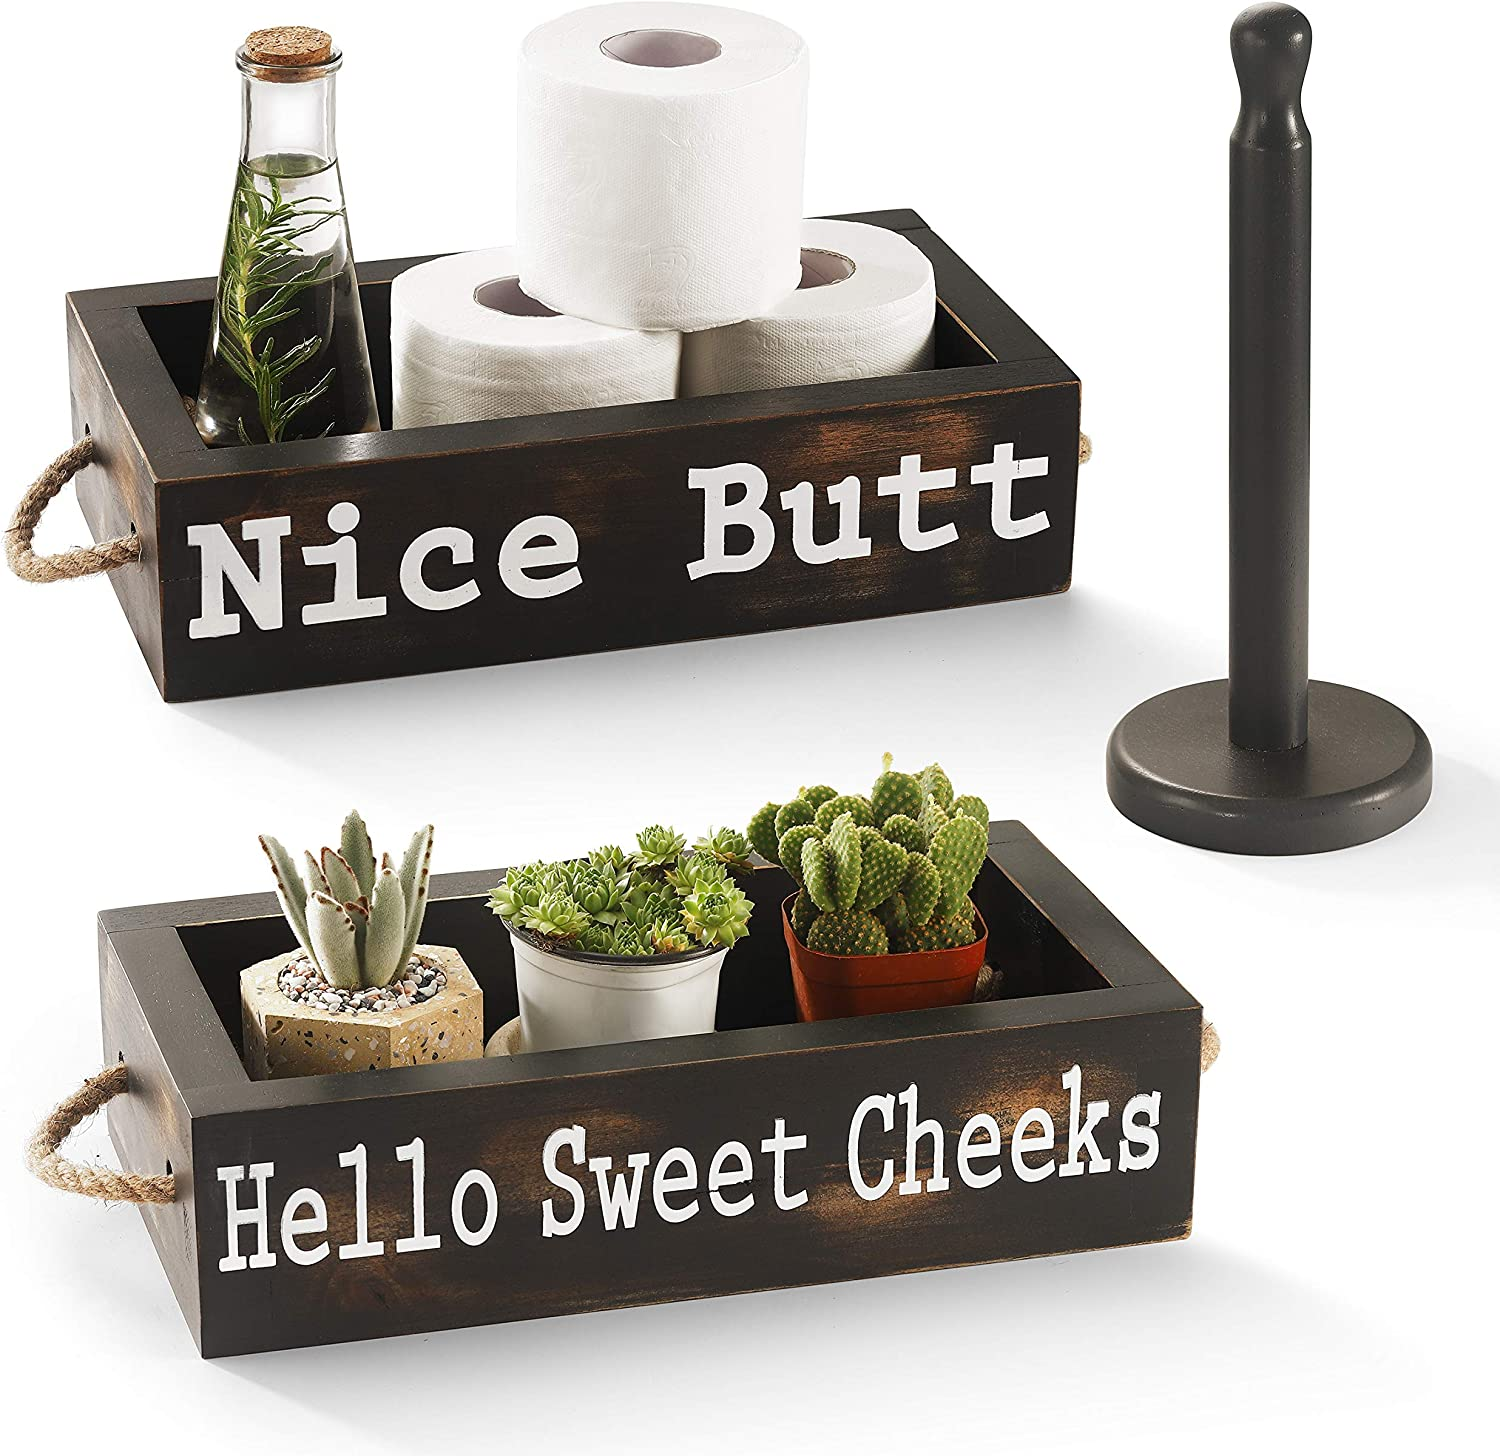 CABASAA Nice Butt Bathroom Decor Box, 2 Sided Funny Toilet Paper Holder, Farmhouse Rustic Wood Organizer, Funny Home Decor, Wooden Crate with Rope Handles (Dark Grey)